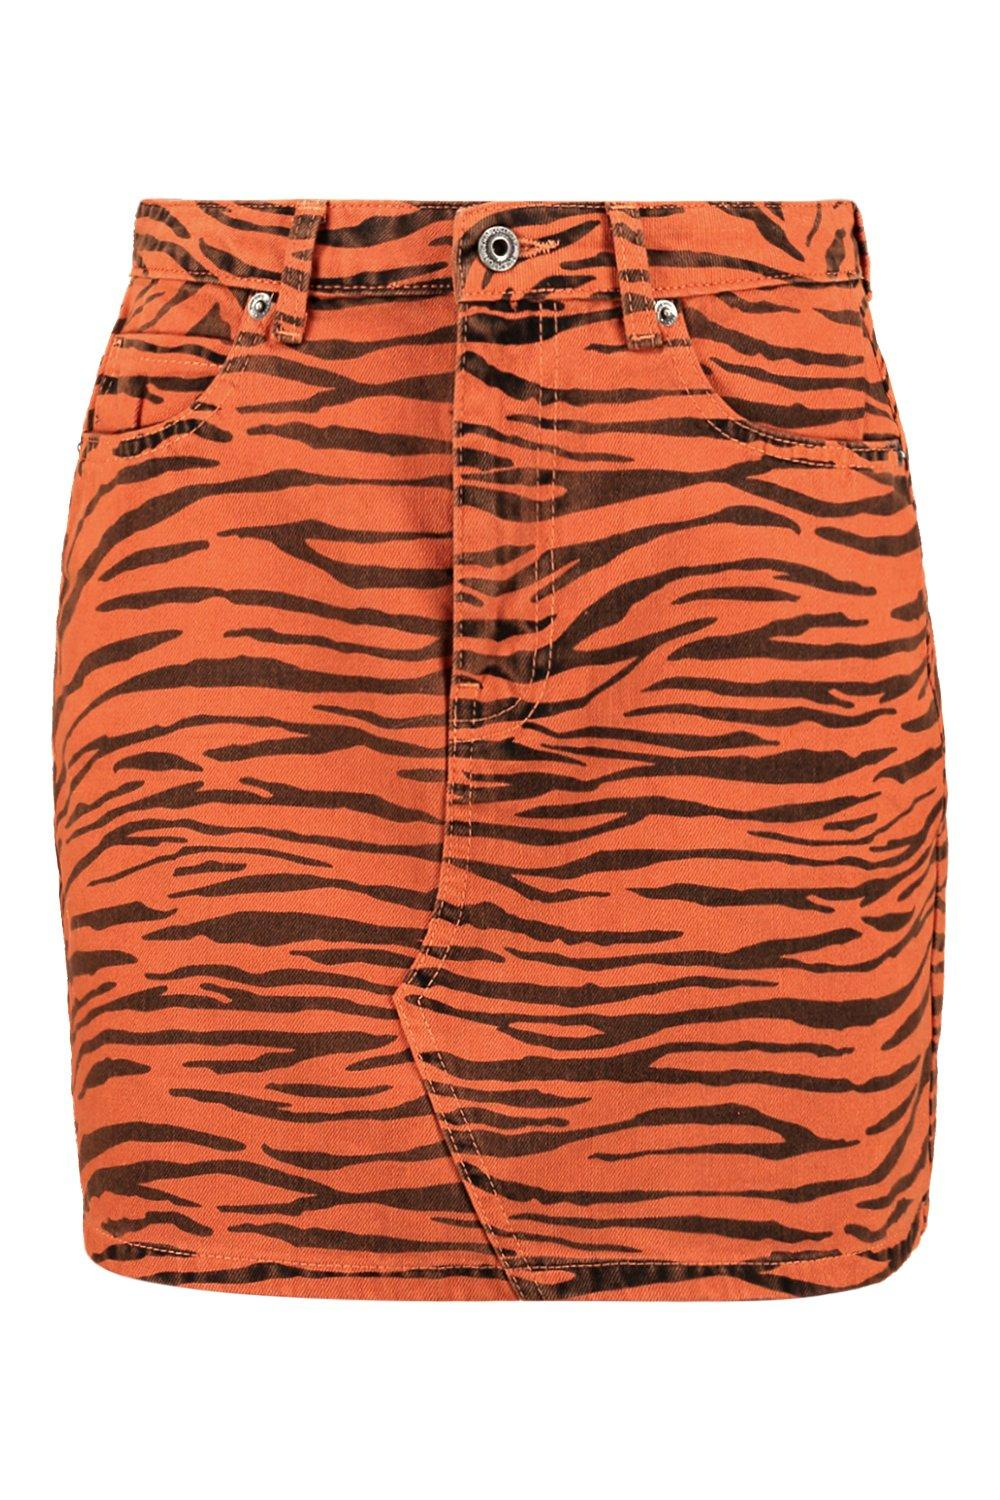 Tiger tan Skirt Denim Print Tiger Print Denim x7nwO6